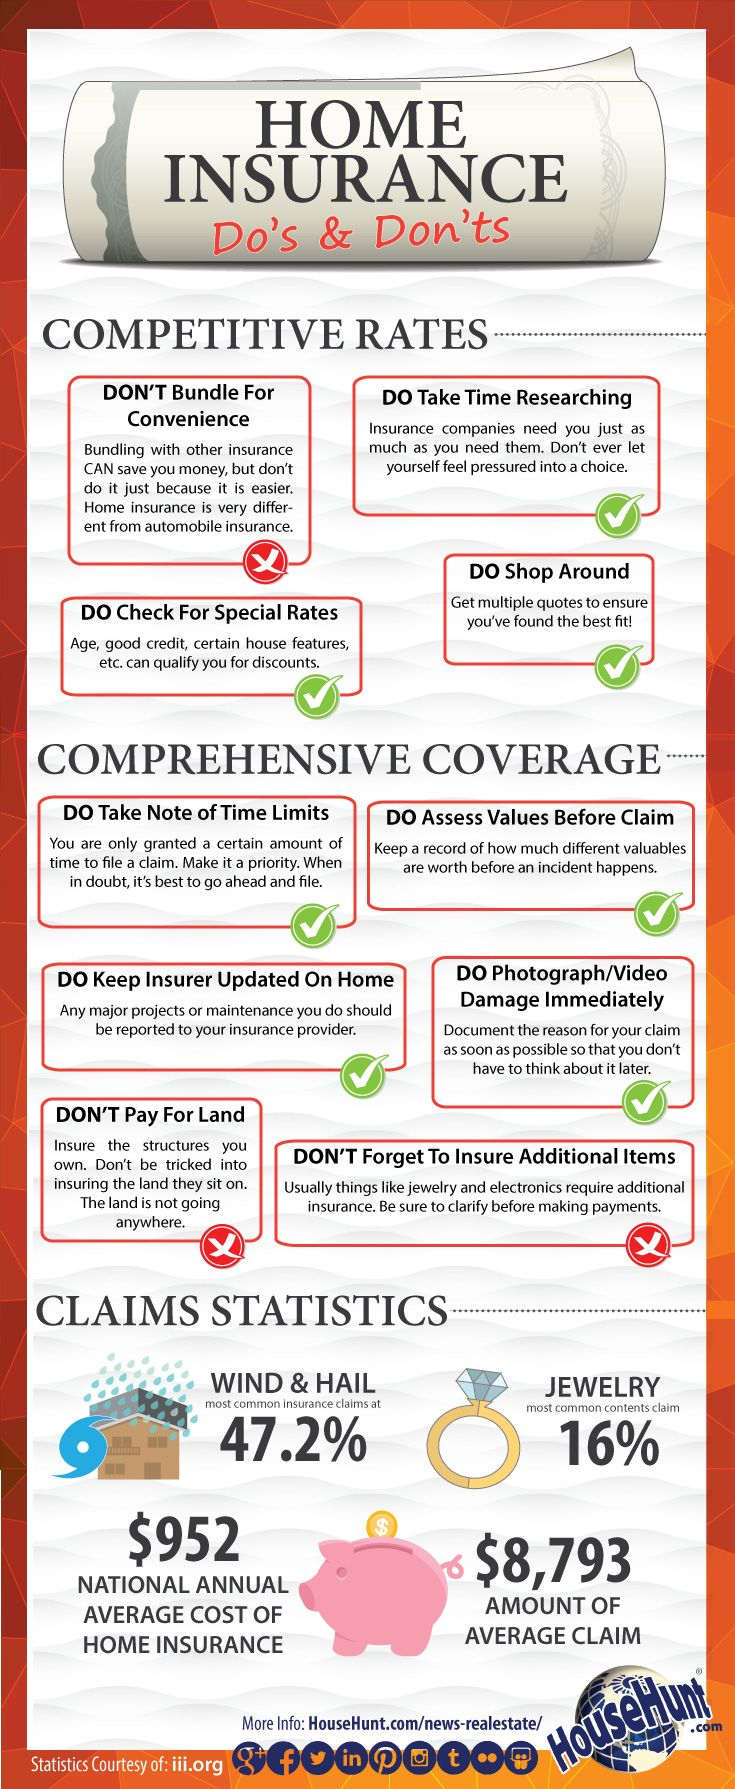 Home Insurance Do's and Don'ts [Infographic] Home